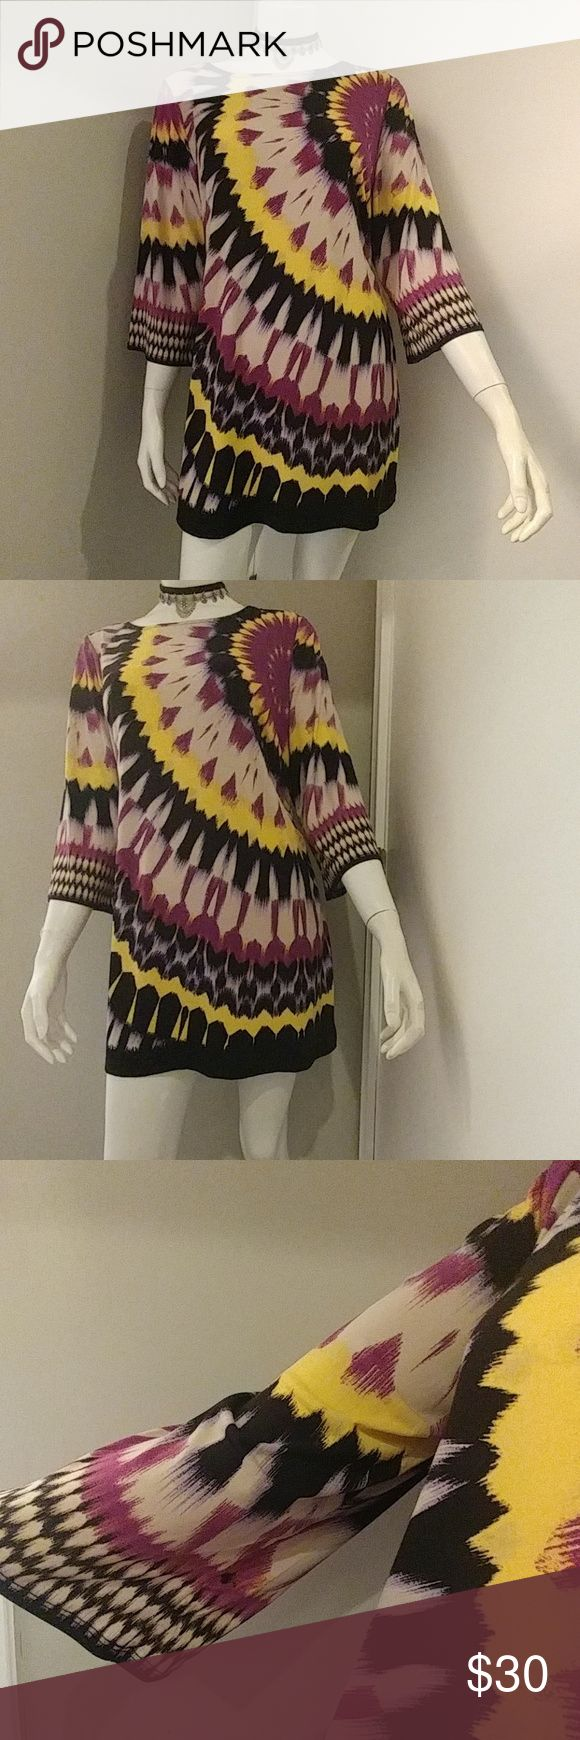 Adorable Alfani Petite Dress/ Tunic Colorful pattern of purple, yellow, tan and black. Slight bell sleeves. Can be worn as a cute little dress or as a tunic! Easy to wash and wear😀. Size Petite Large Alfani Petite Dresses